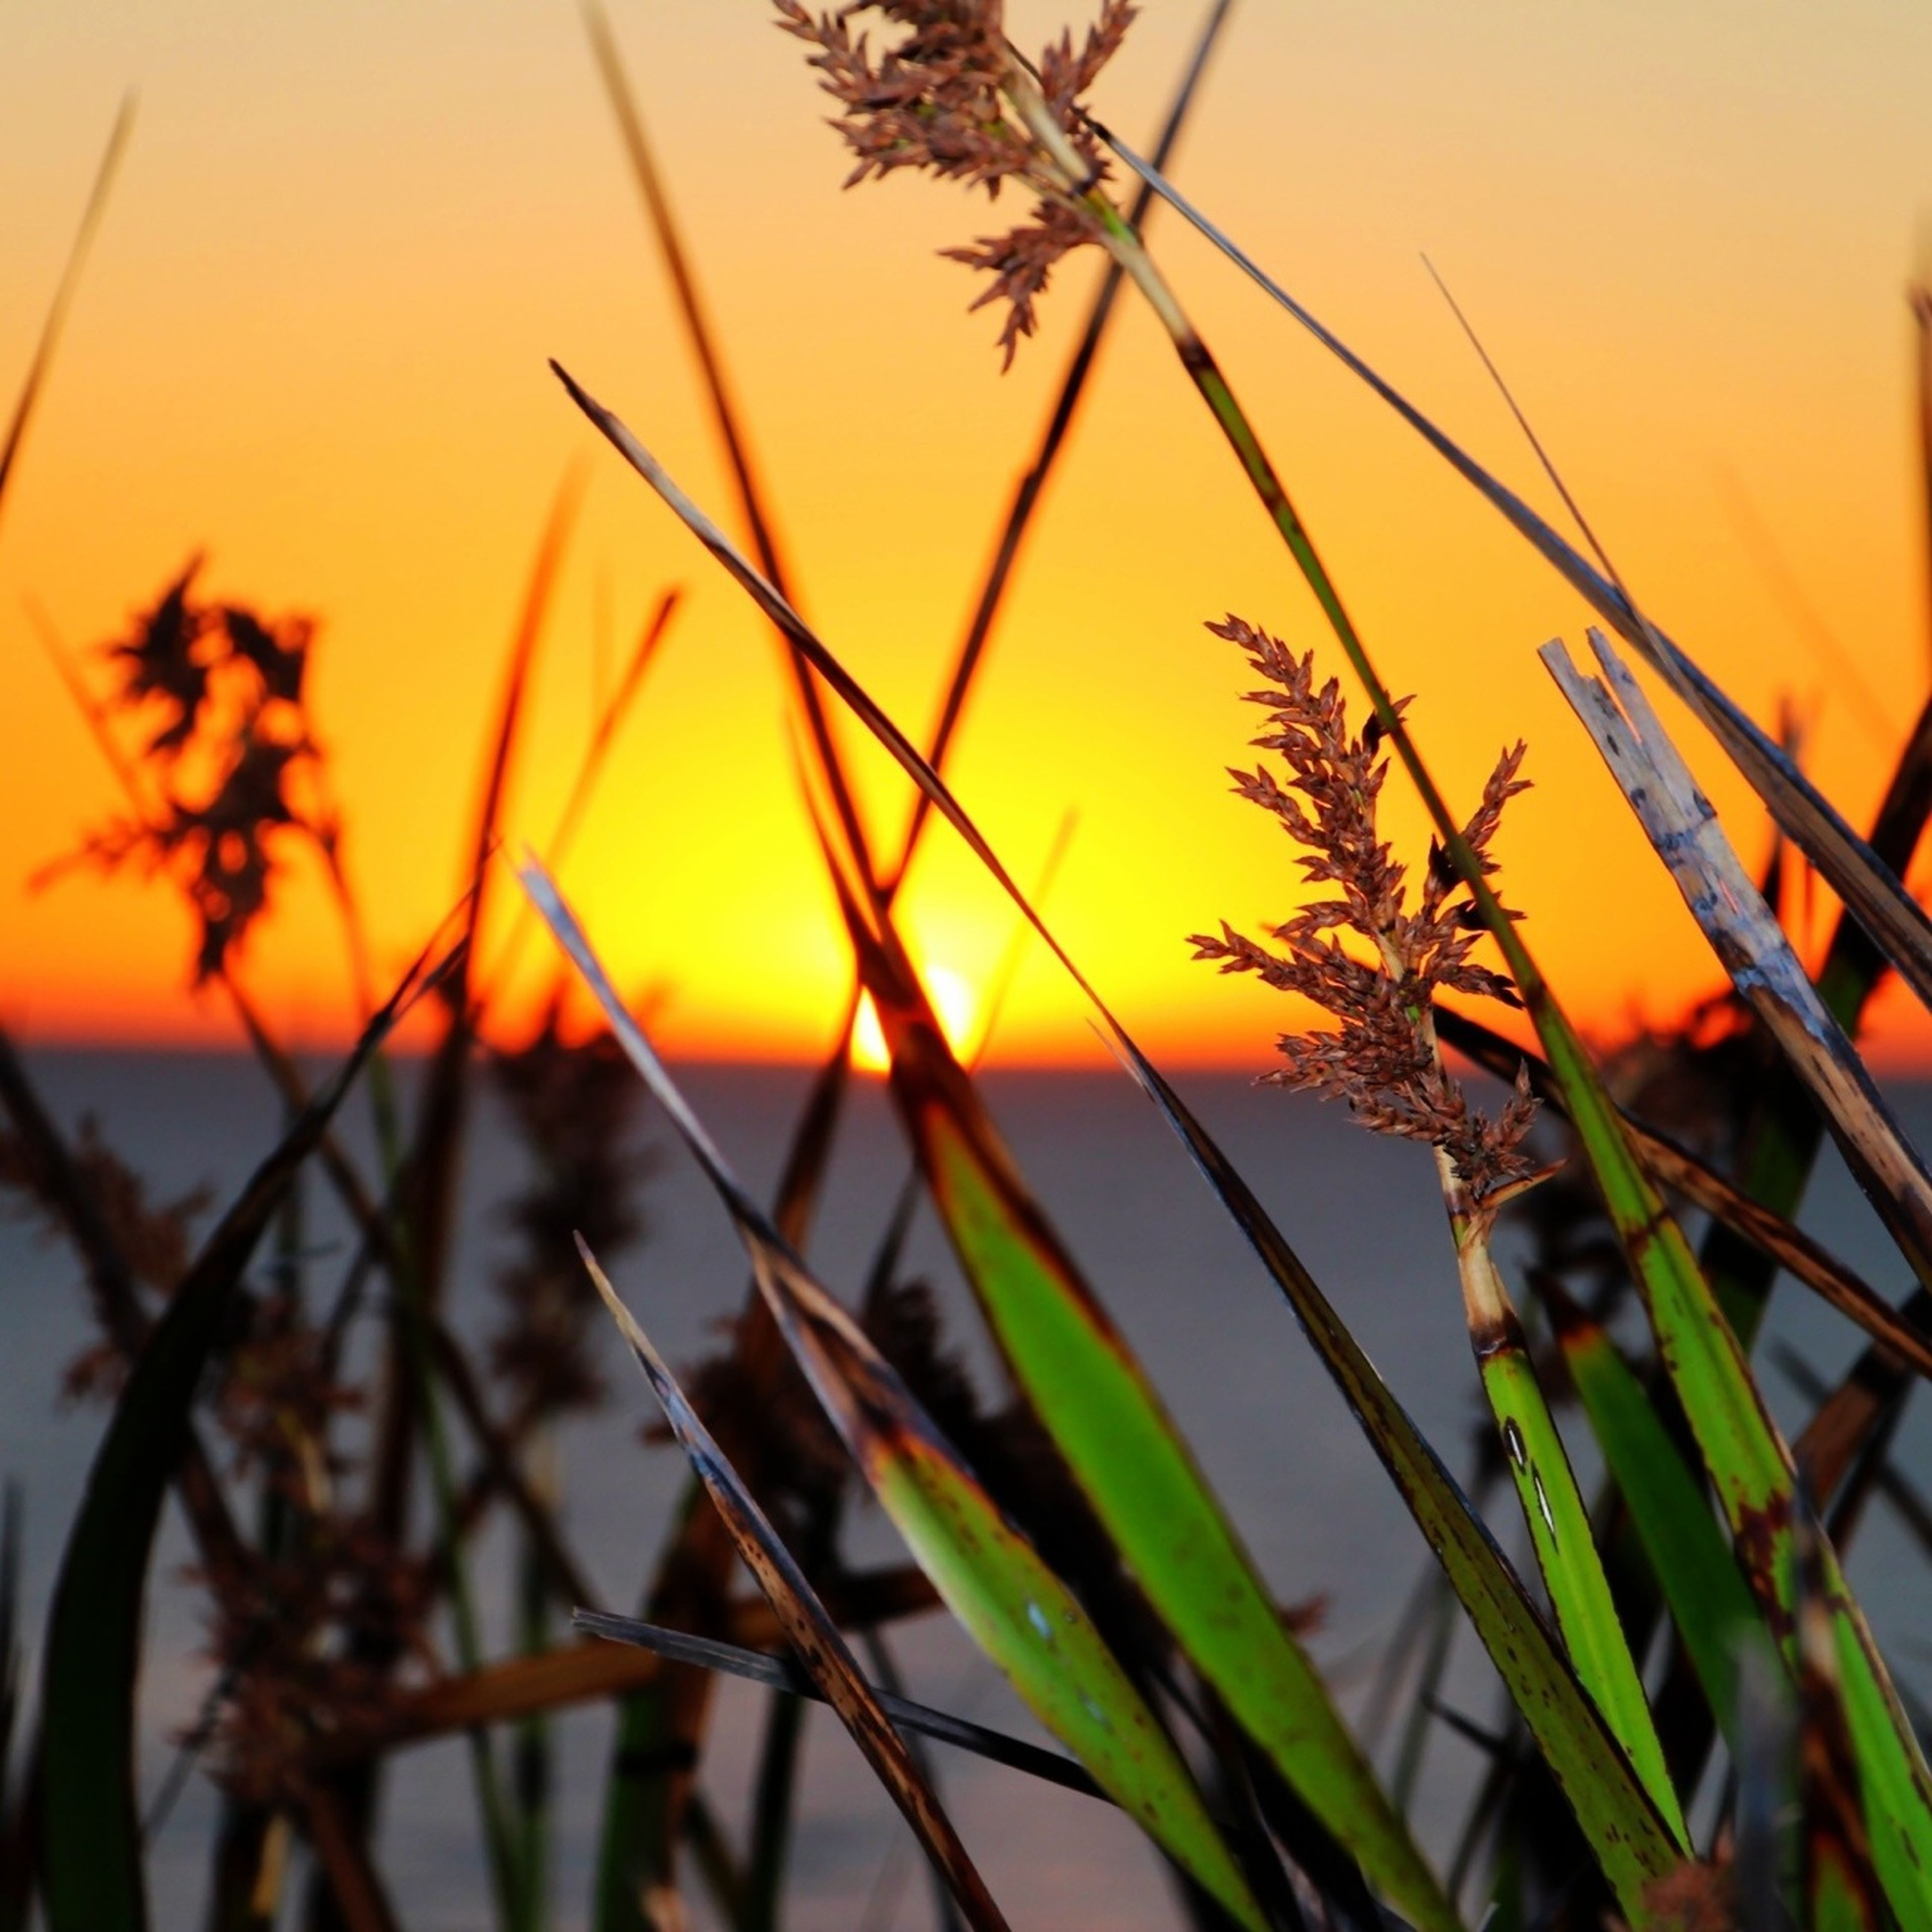 sunset, orange color, plant, nature, growth, focus on foreground, beauty in nature, tranquility, close-up, scenics, sky, stem, yellow, tranquil scene, outdoors, field, no people, idyllic, branch, horizon over water